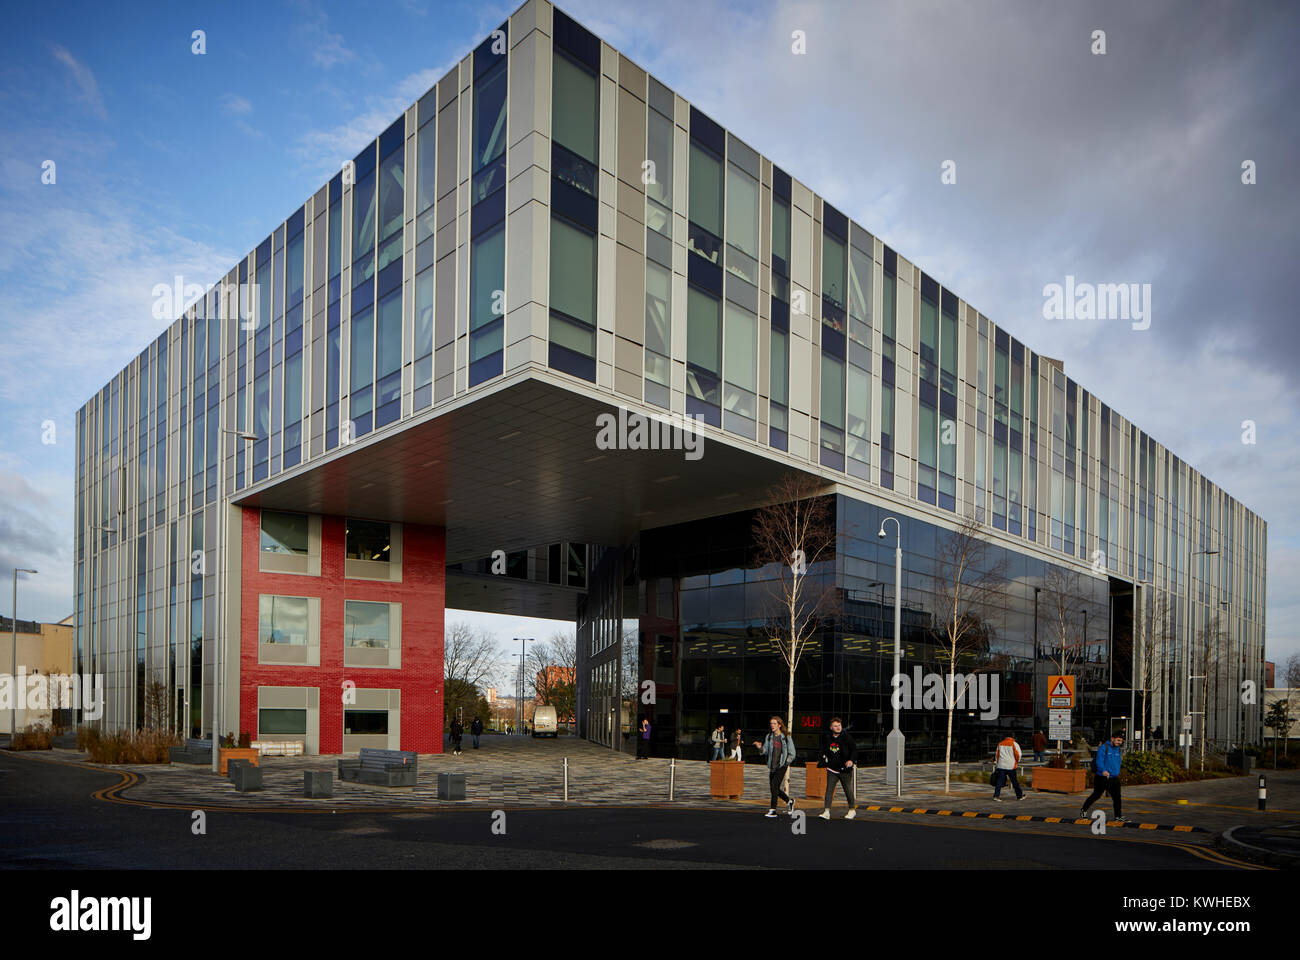 L'Université de Salford nouveau moderne en verre contemporain New Adelphi Theatre par Stride Treglown architectes Photo Stock